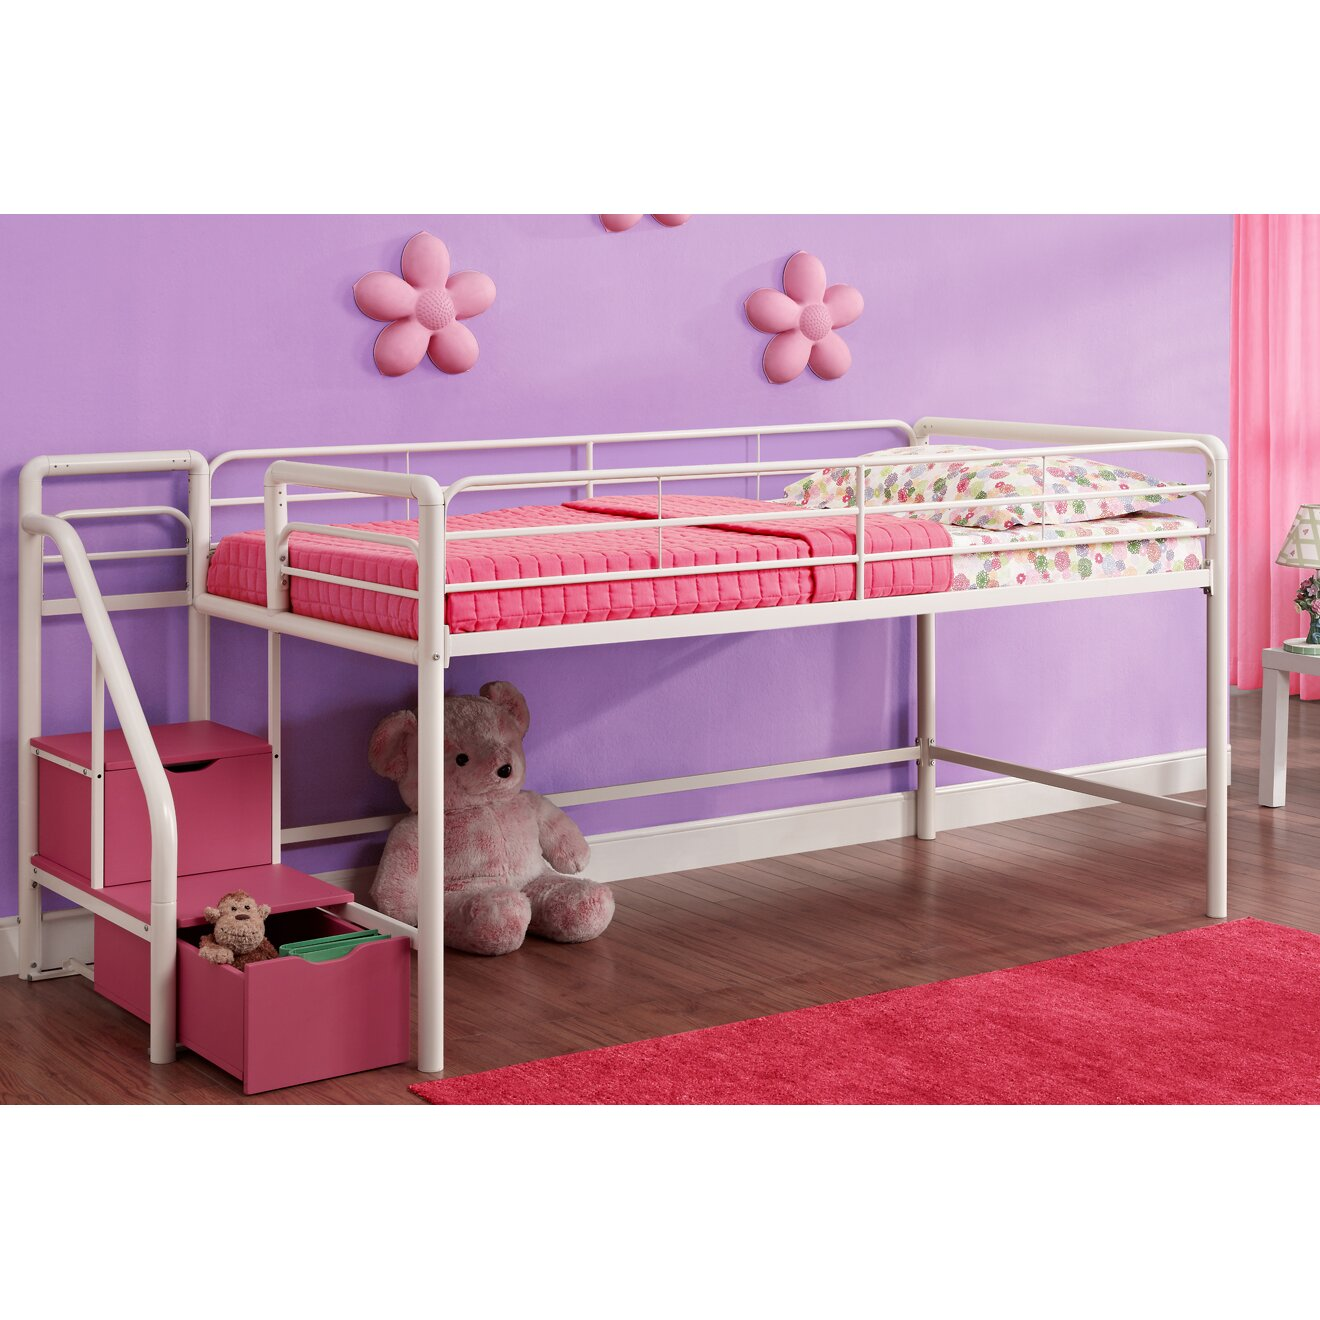 Dhp junior twin loft bed with storage reviews wayfair for Loft bed with storage